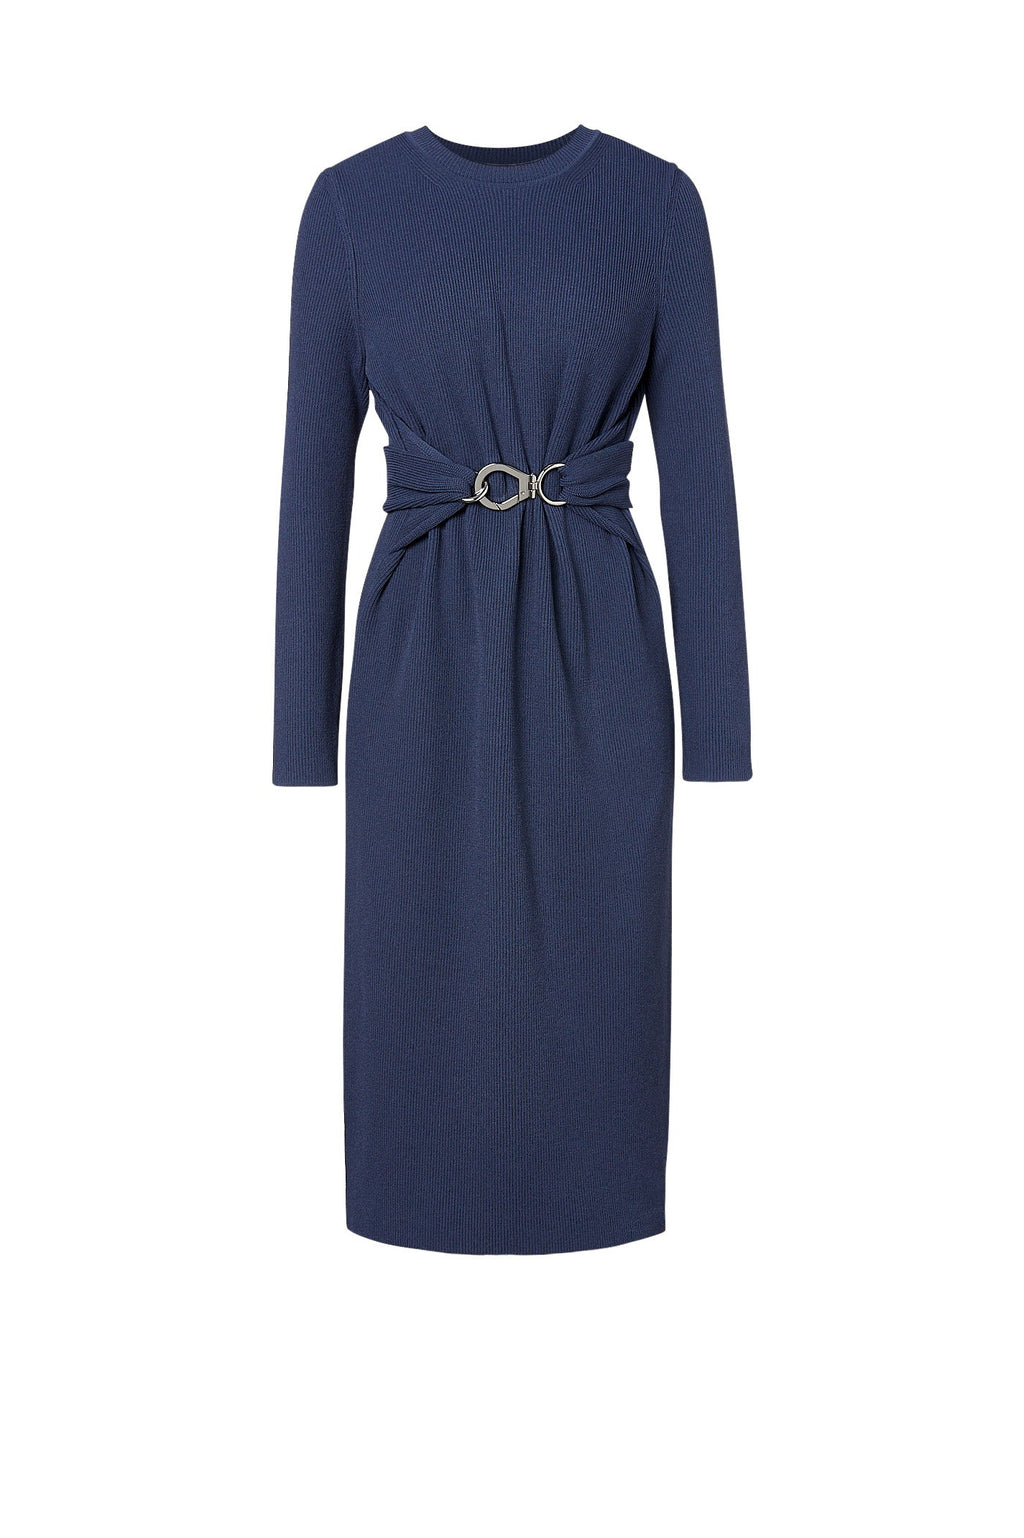 CREPE KNIT BELTED DRESS